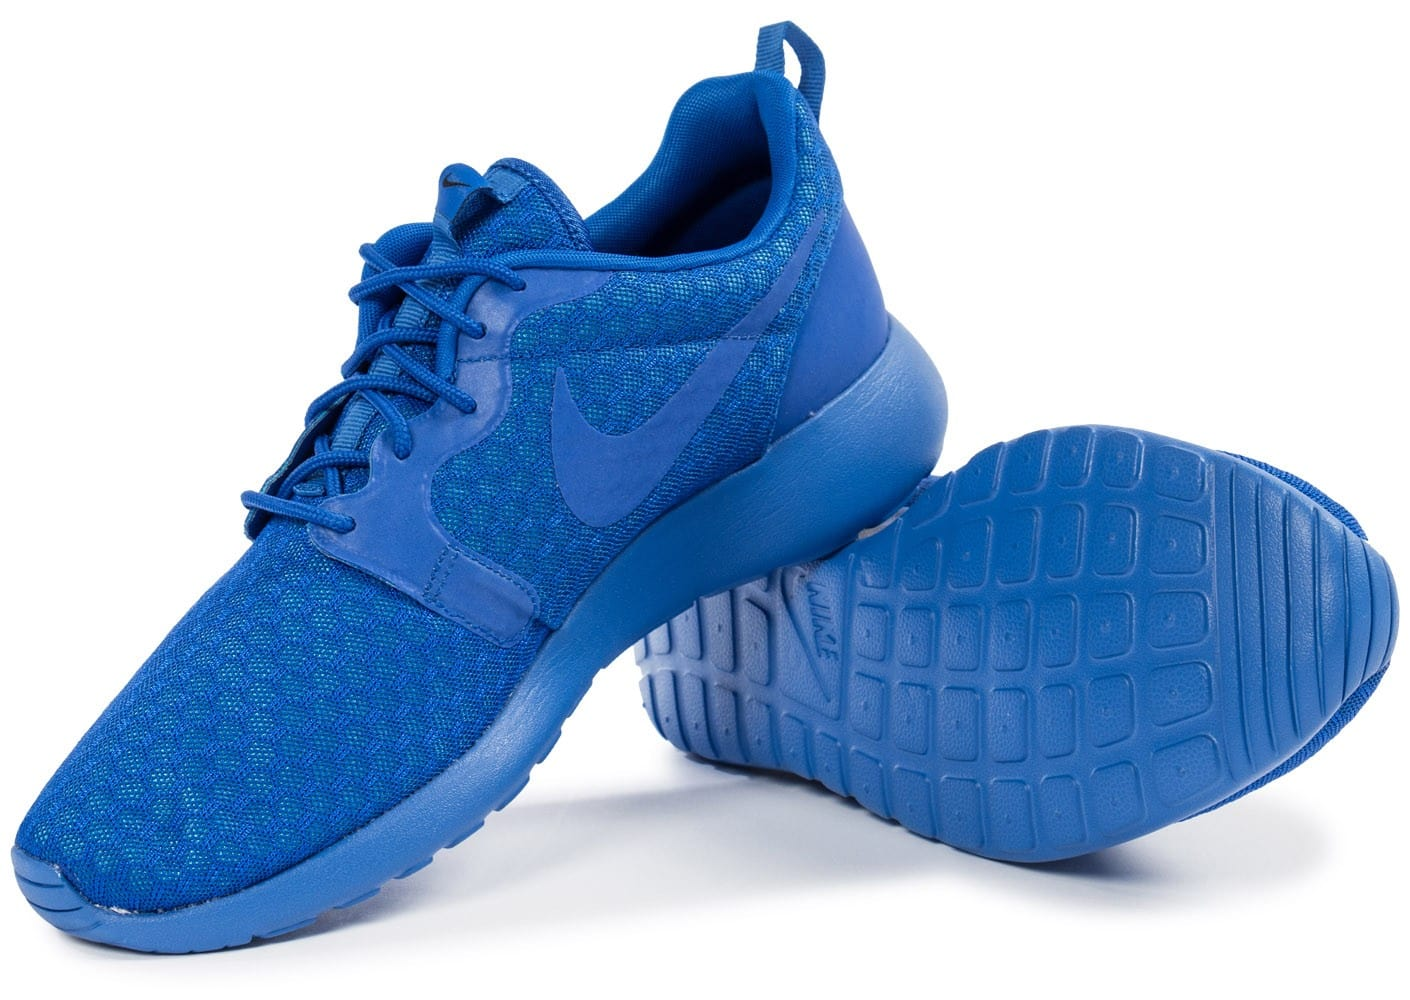 Nike Roshe One Hyperfuse bleue Chaussures Baskets homme